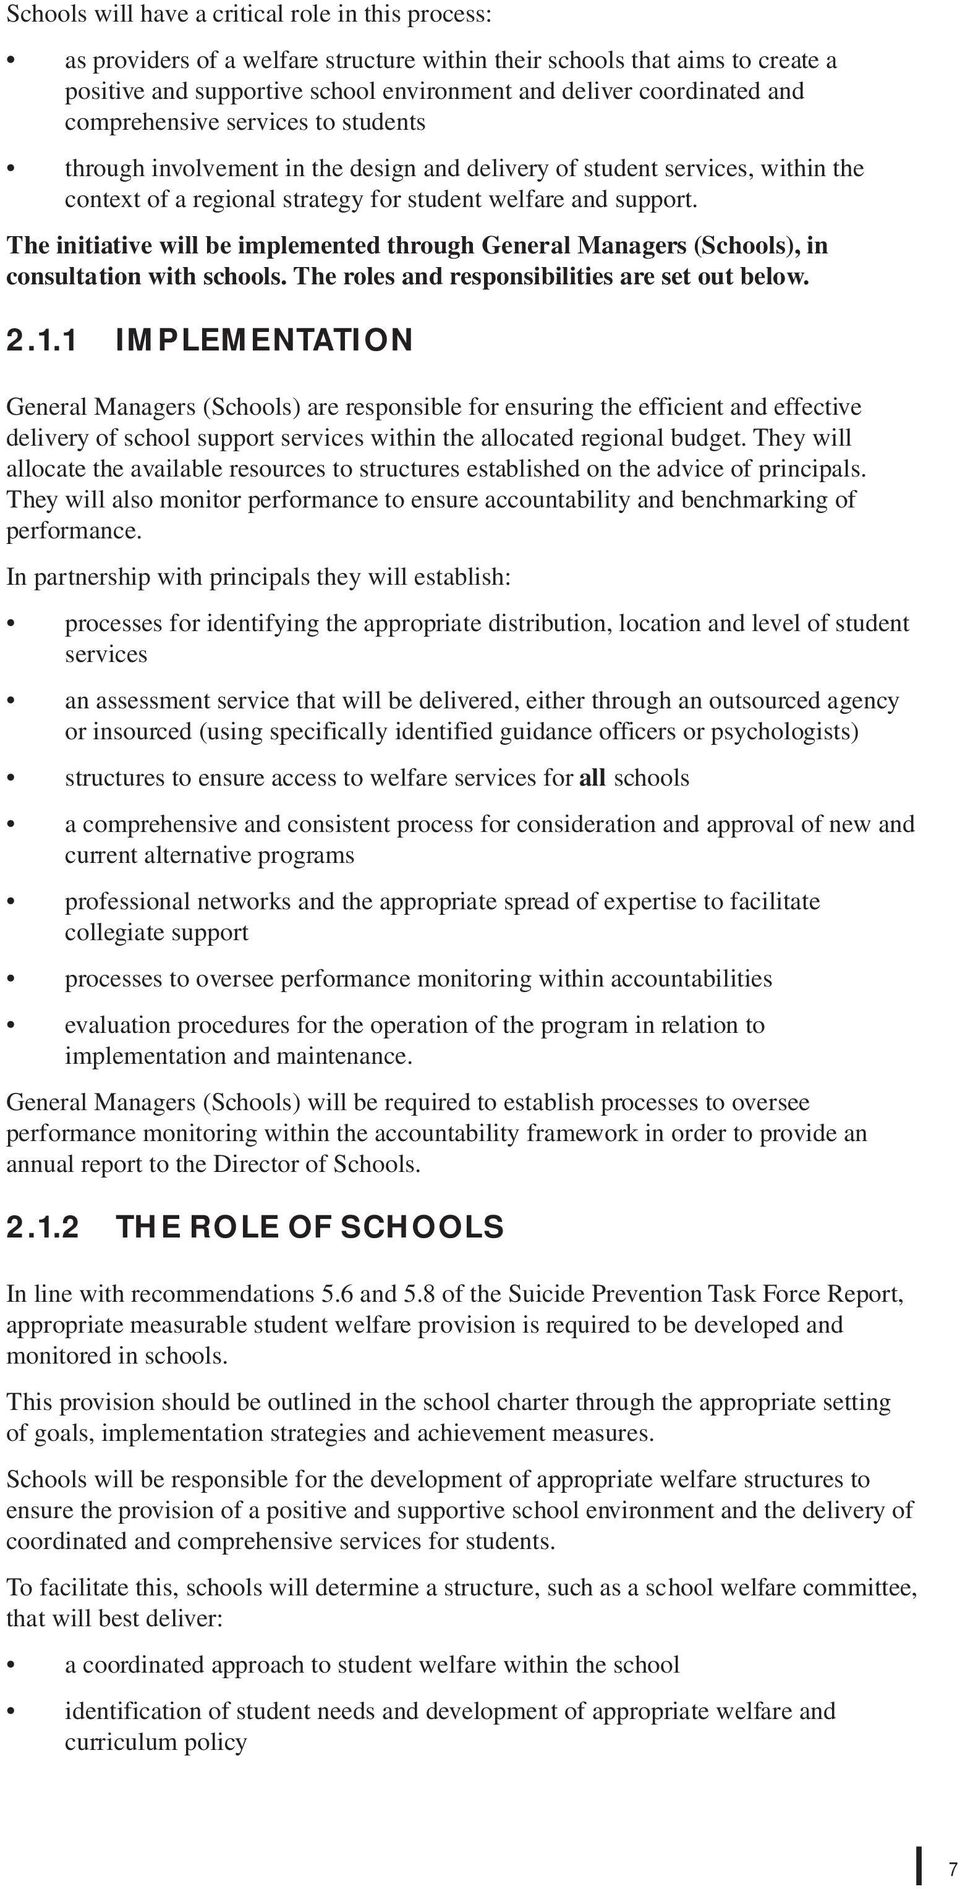 The initiative will be implemented through General Managers (Schools), in consultation with schools. The roles and responsibilities are set out below. 2.1.